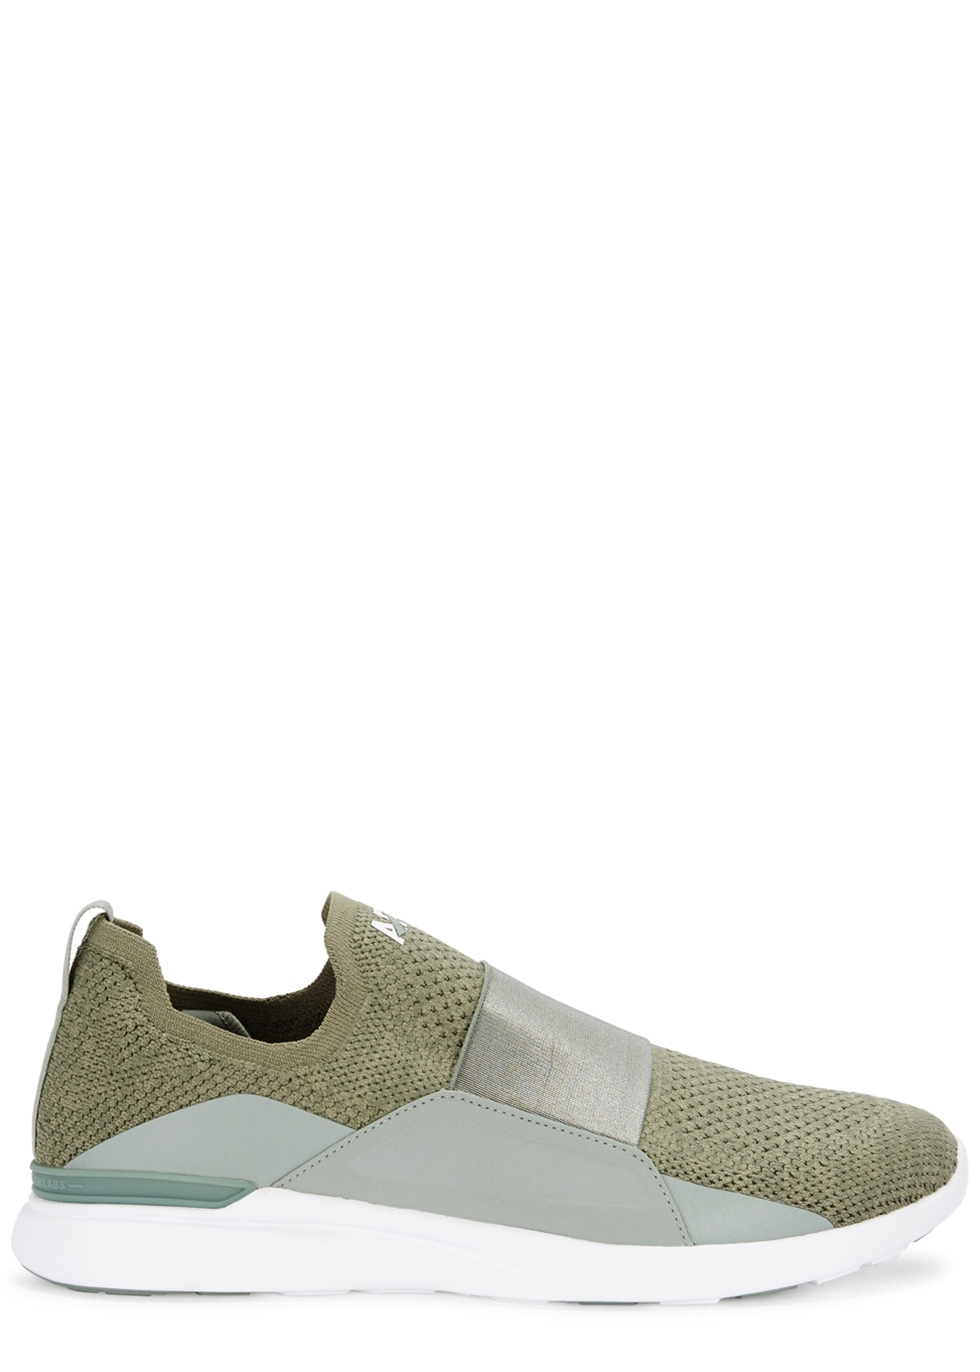 APL ATHLETIC PROPULSION LABS TECHLOOM BLISS ARMY GREEN KNITTED TRAINERS